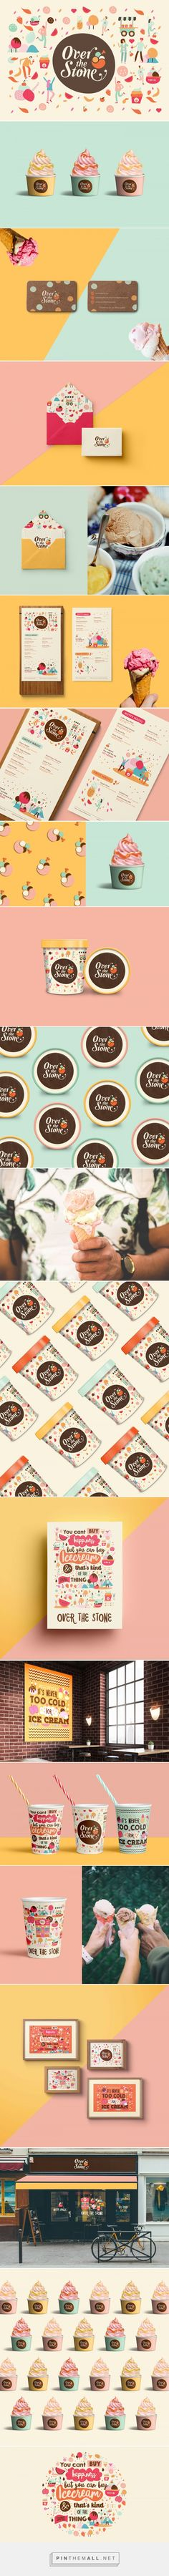 Over the Stone Ice Cream Shop Branding by Meroo Seth, Nachiket Jadhav, and Mechi Co.design | Fivestar Branding Agency – Design and Branding Agency & Curated Inspiration Gallery #icecreamshop #icecreambranding #branding #brand #brandinginspiration #design #graphicdesign